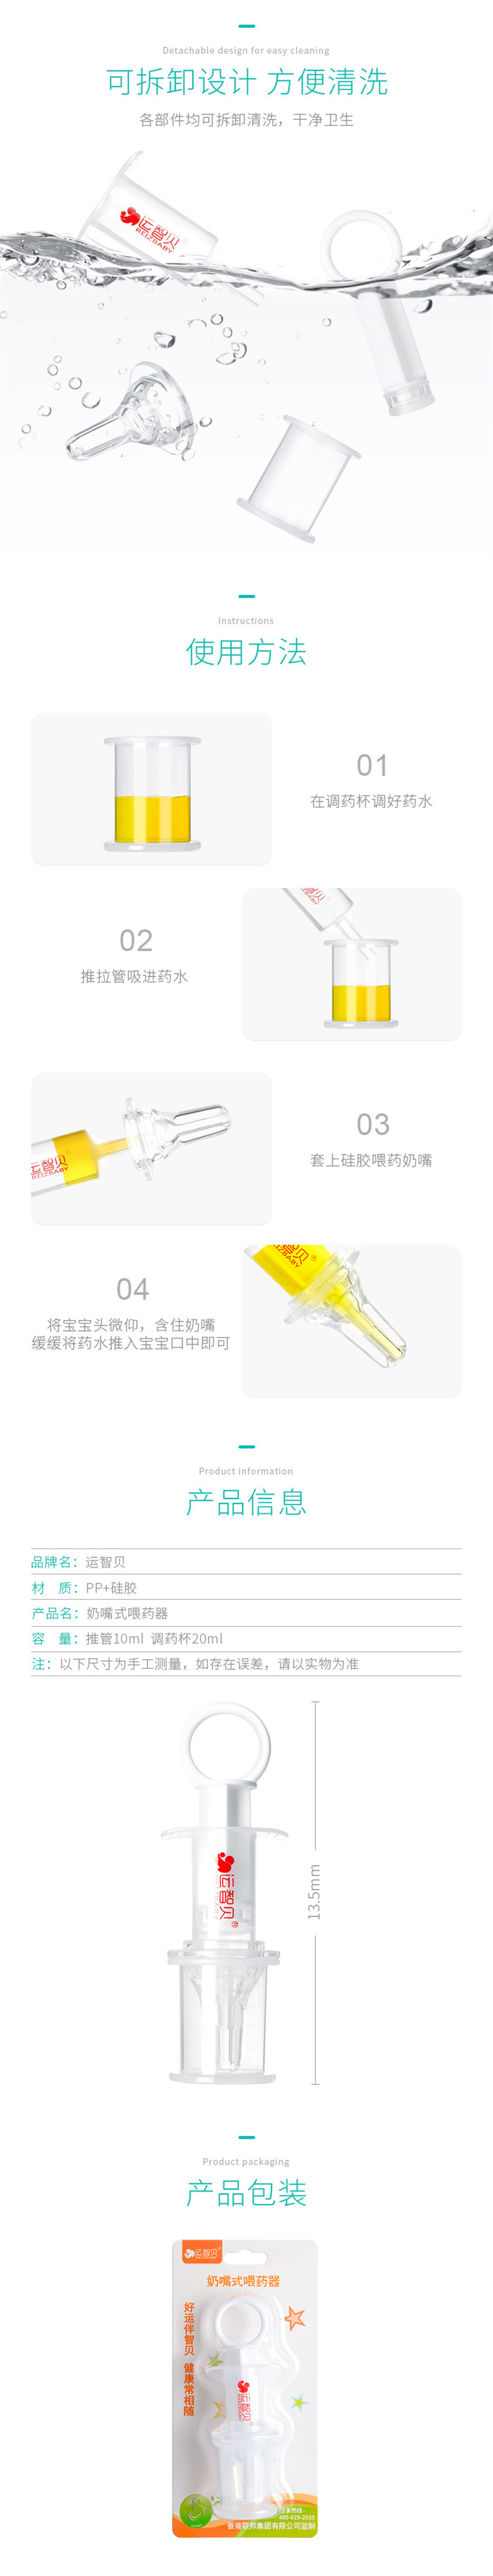 https://xiaoba.shall-buy.com/attachment/images/13938/2019/07/D1FTf6u4Y6nop4Jo464NTFZoKyjzWn.jpg